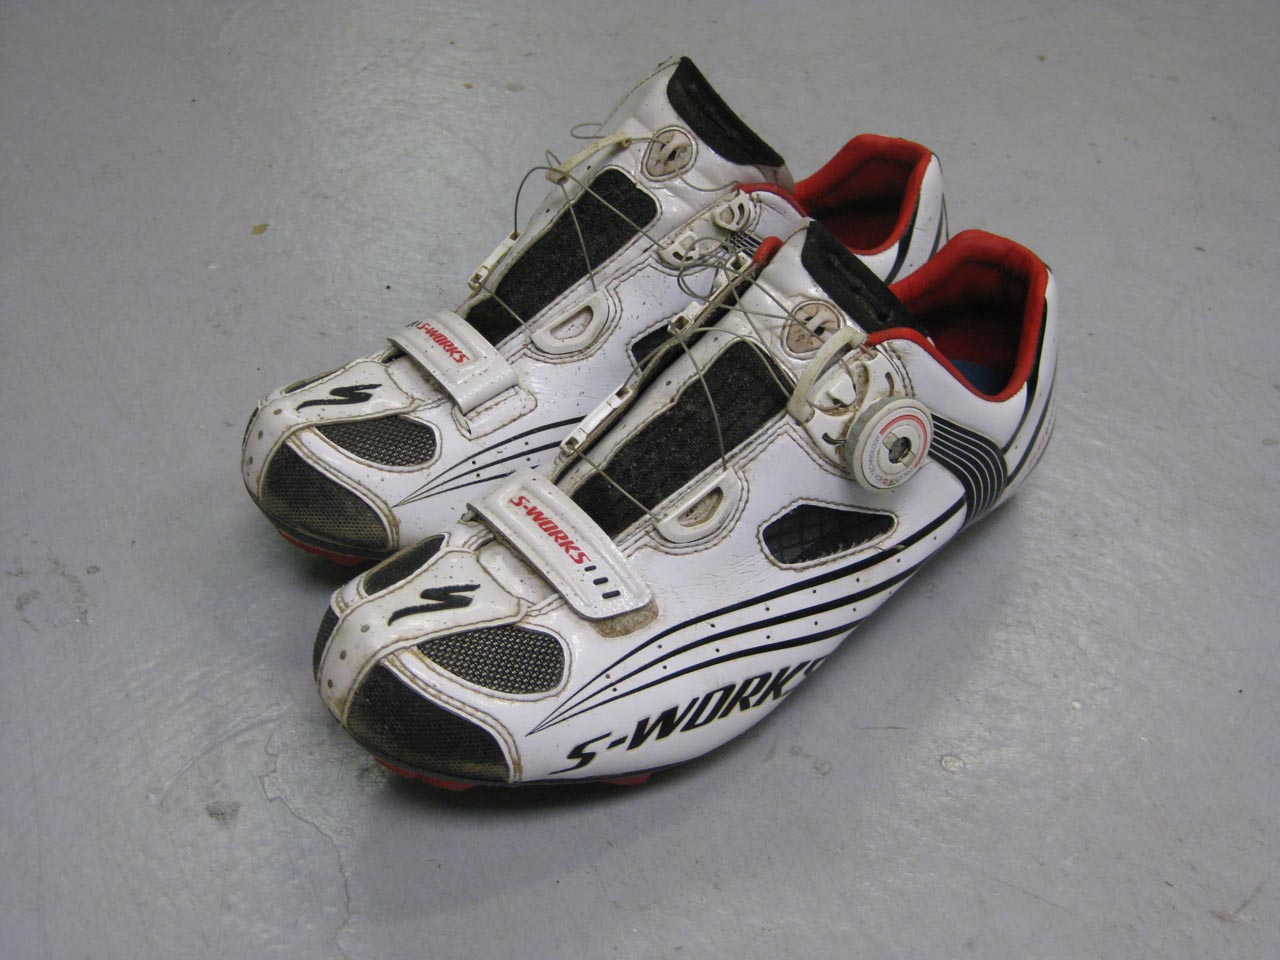 Specialized 2010 S-Works MTB Shoes, only slightly used at time of photo ? Lane Miller